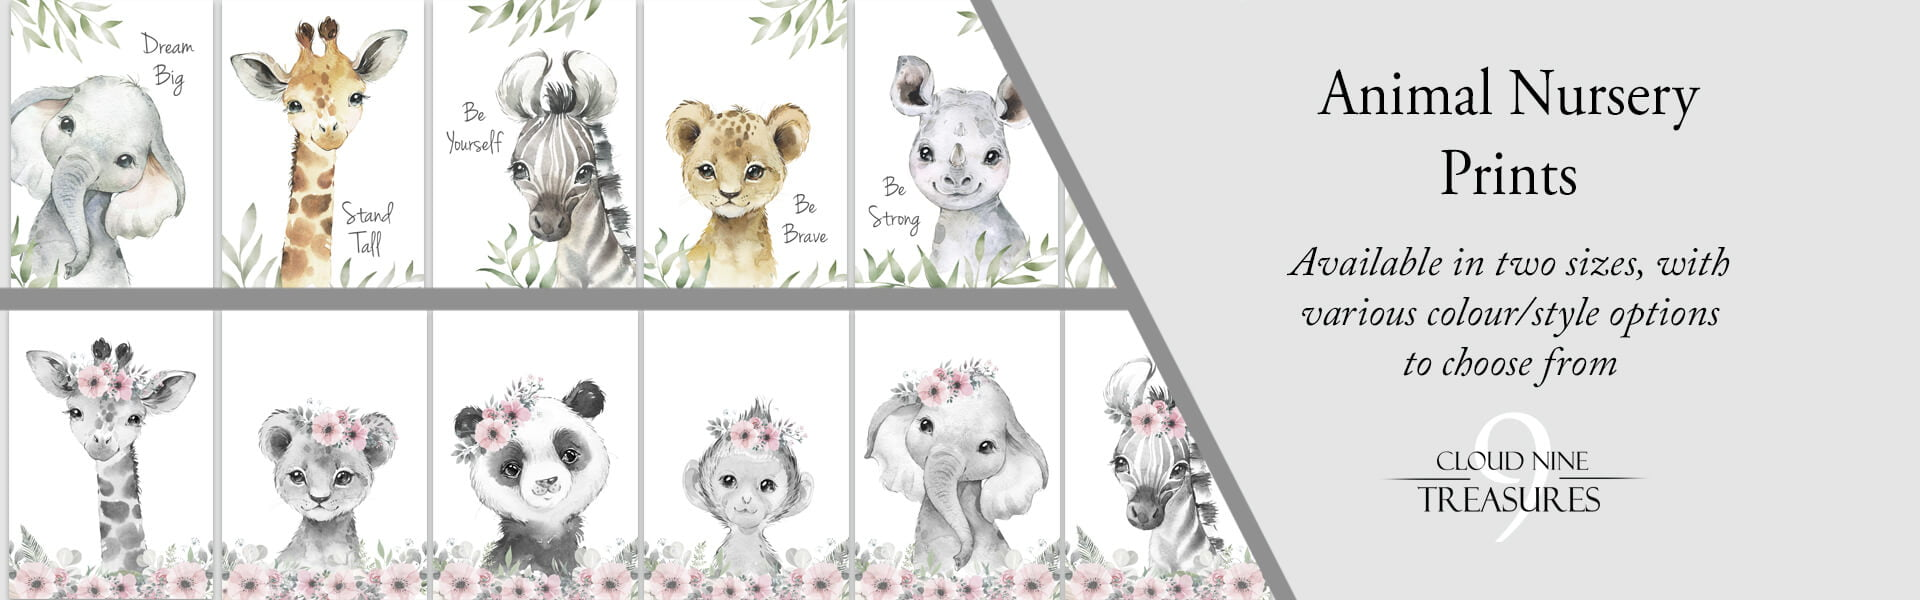 animal nursery prints